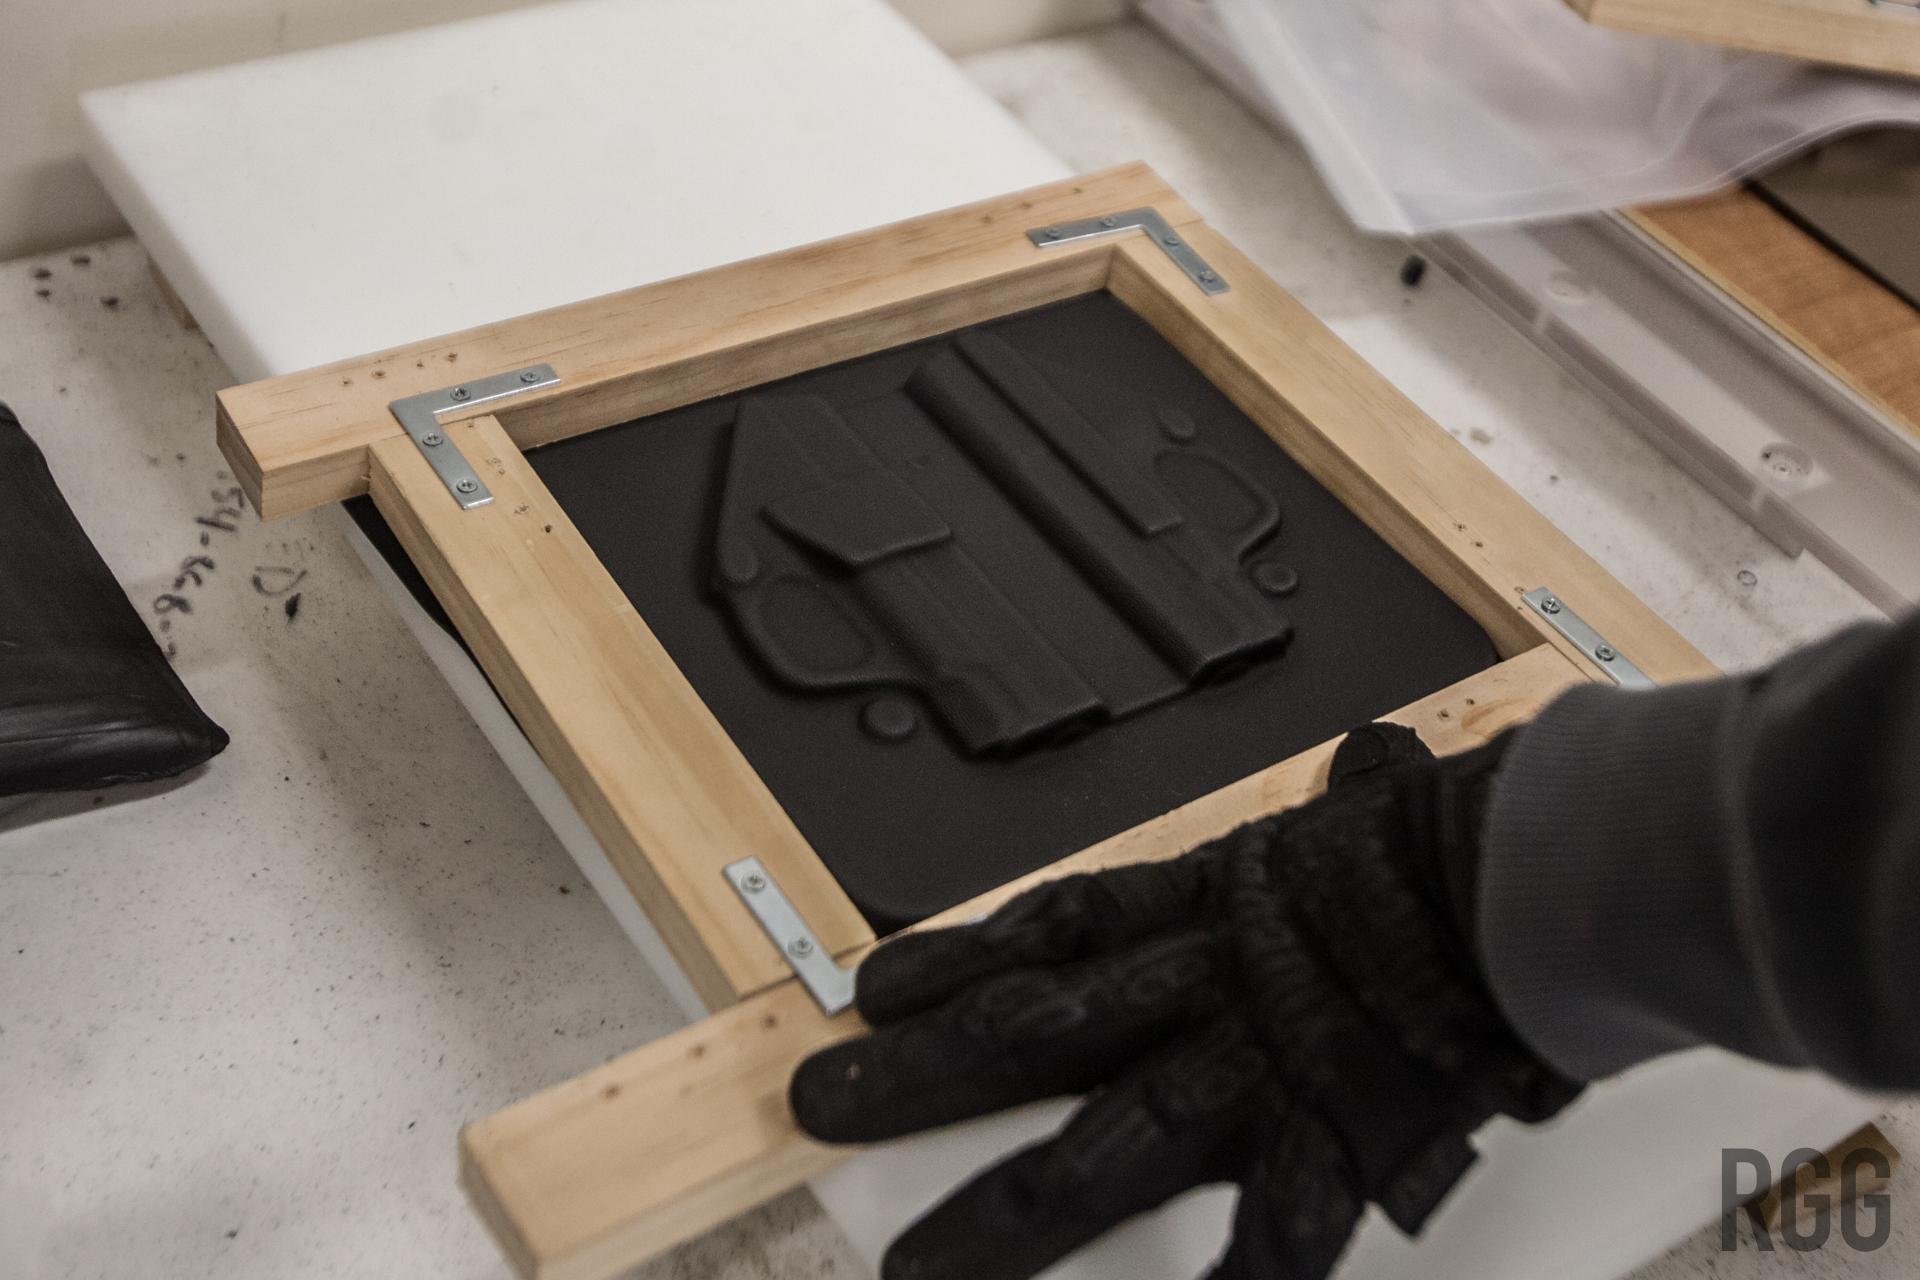 Suction conforms the heated Kydex to the holster mold...